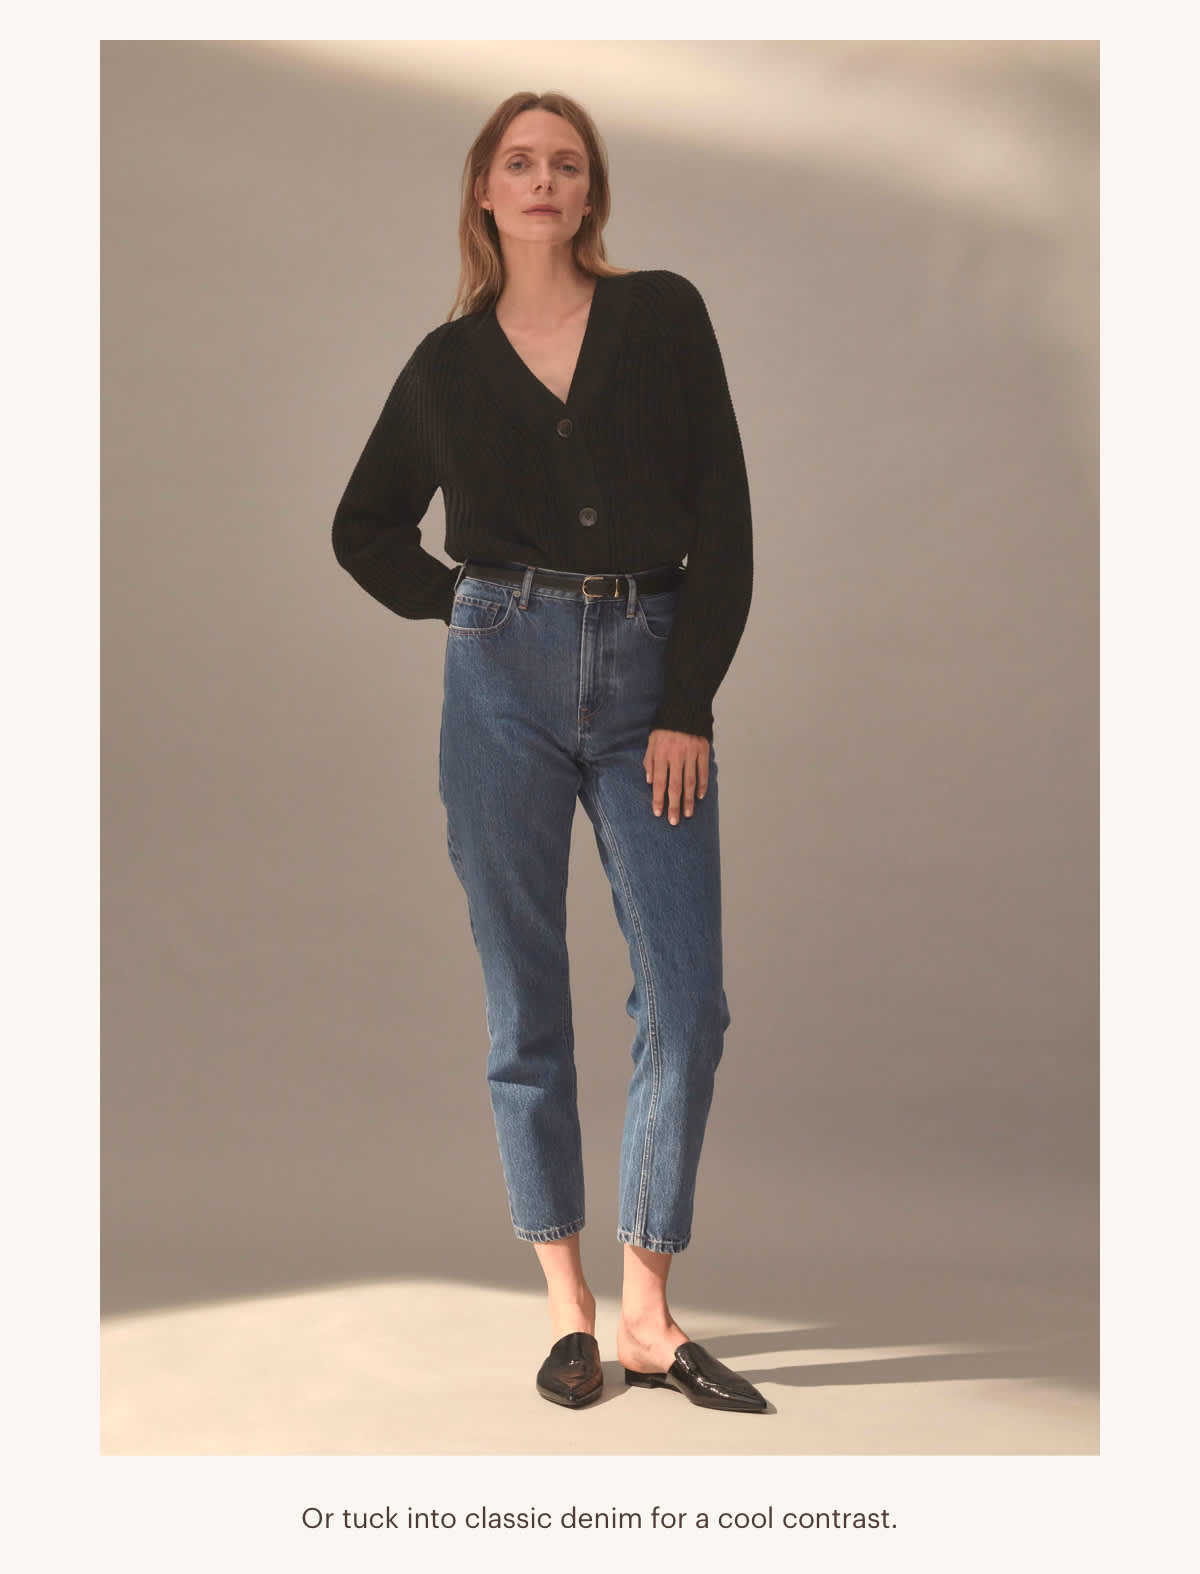 Or tuck into classic denim for a cool contrast.